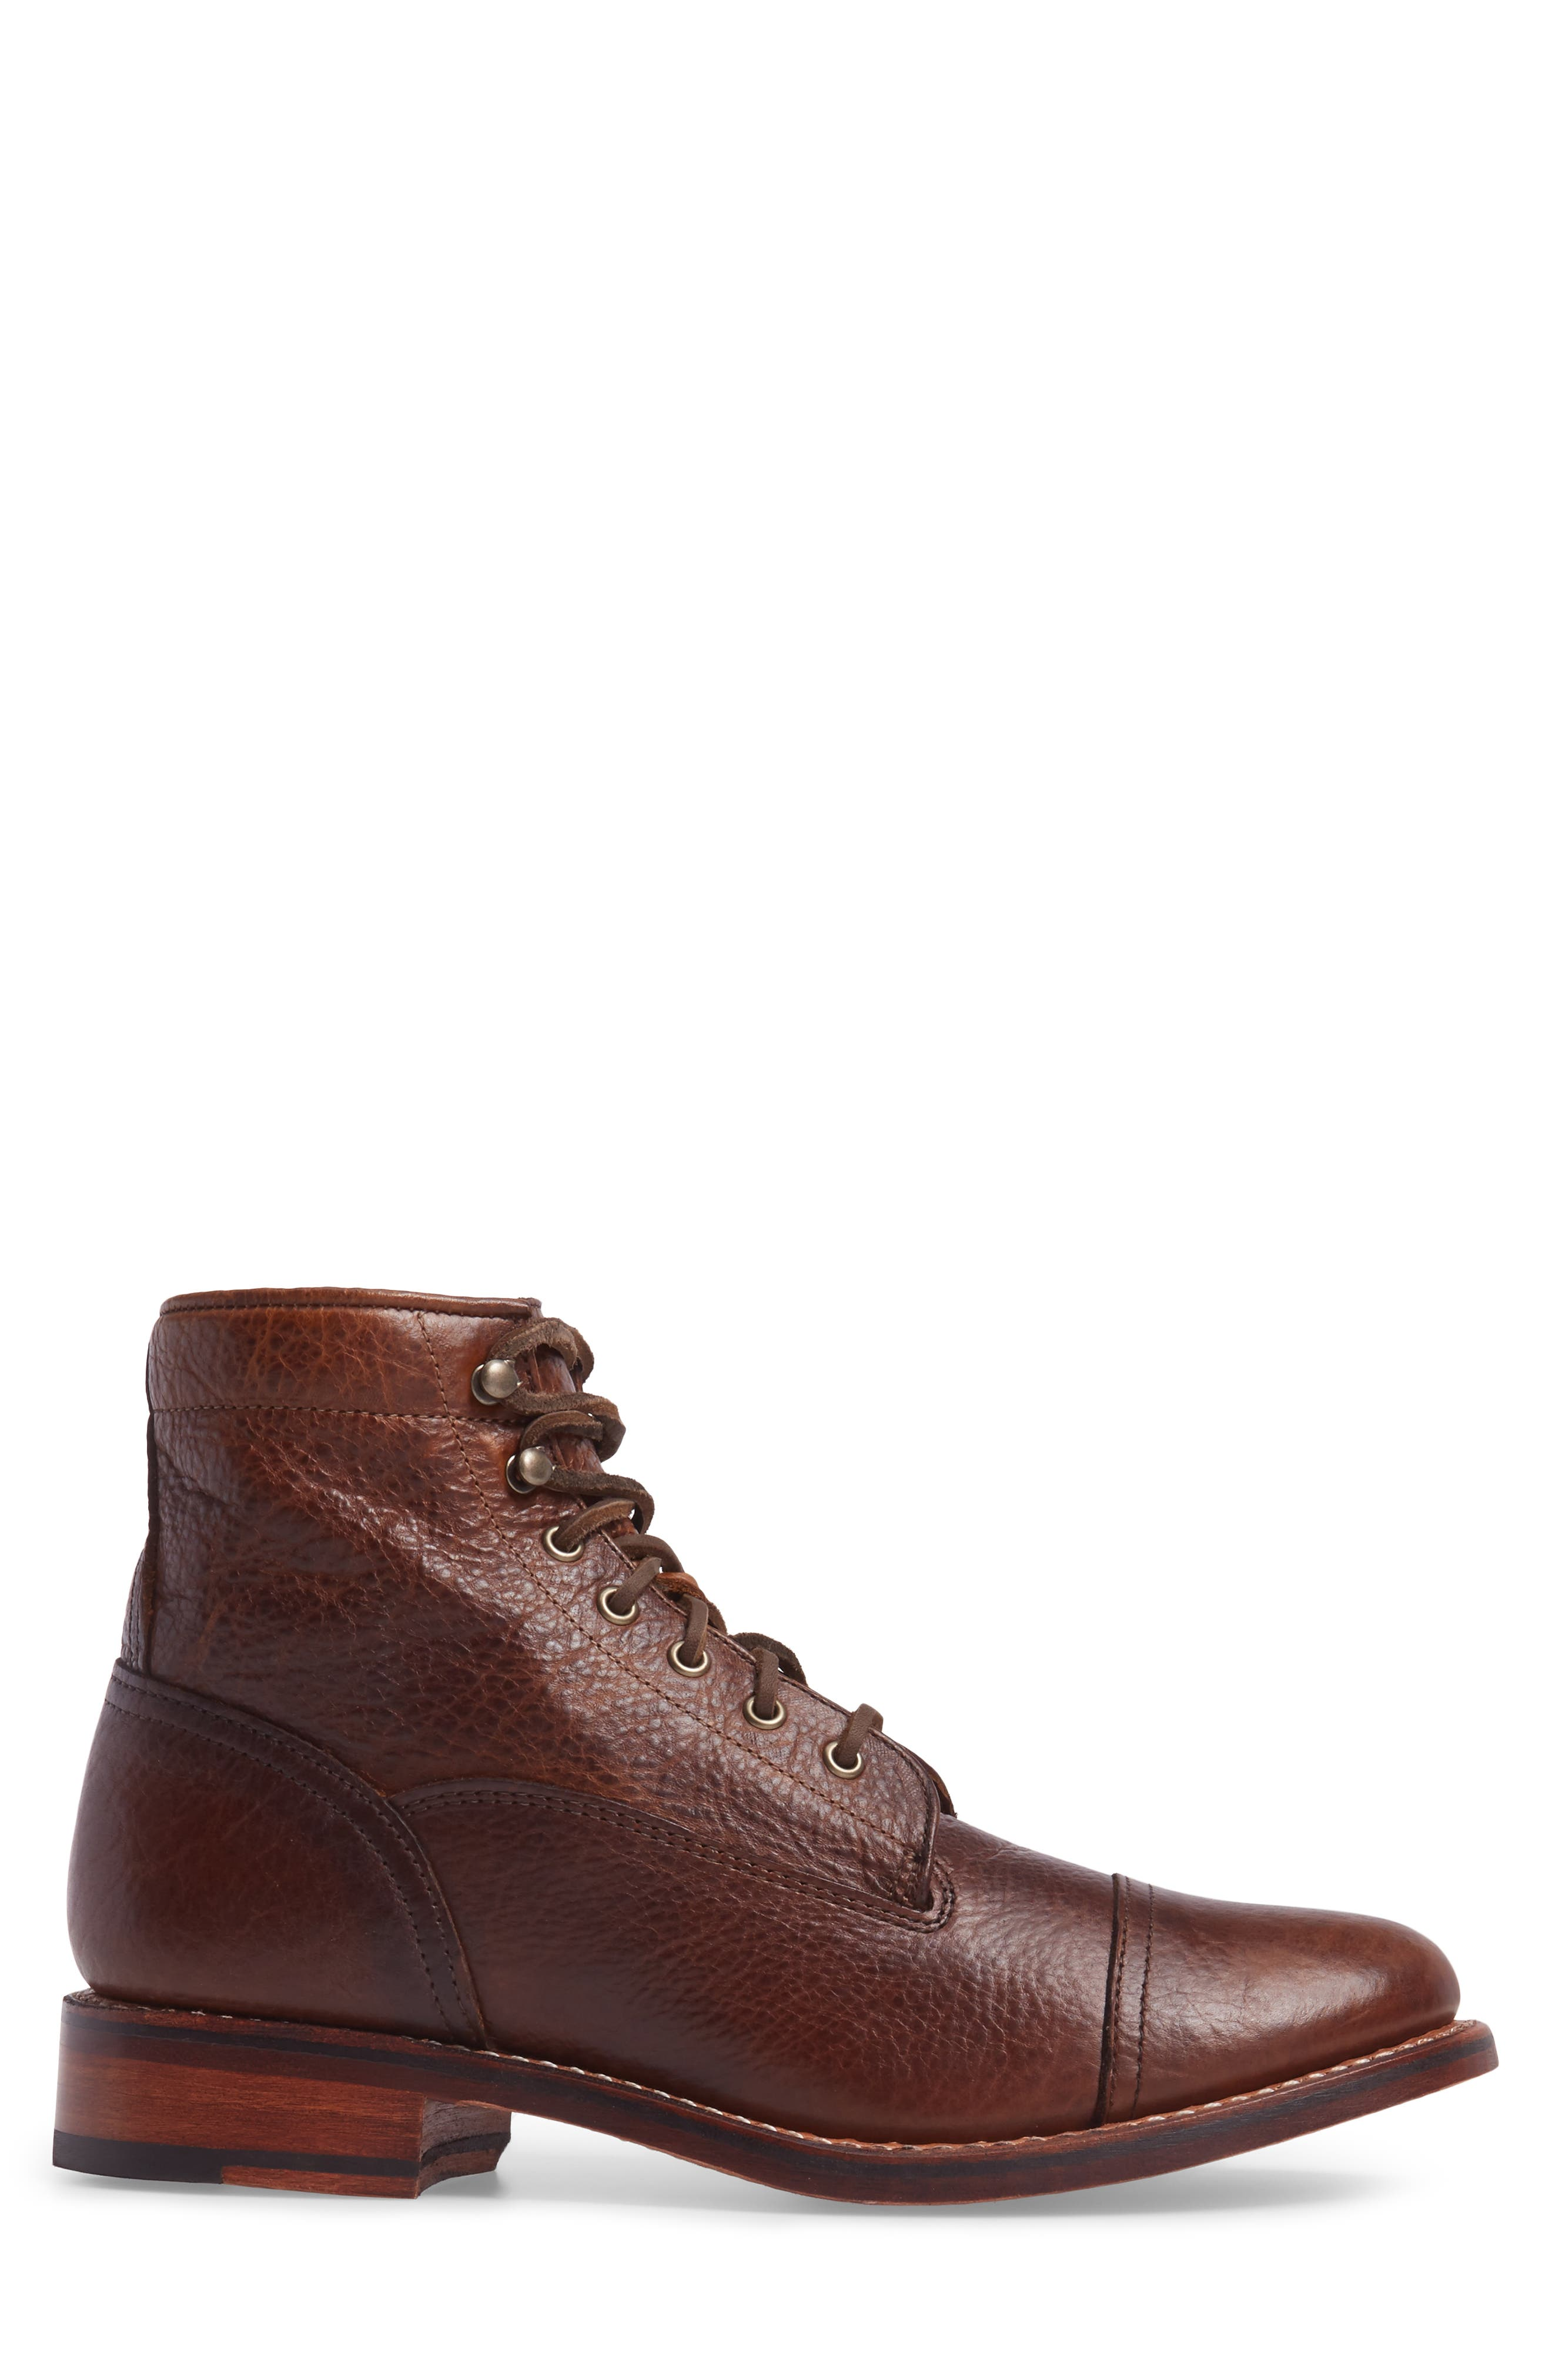 Ariat Highlands Cap Toe Boot,                             Alternate thumbnail 3, color,